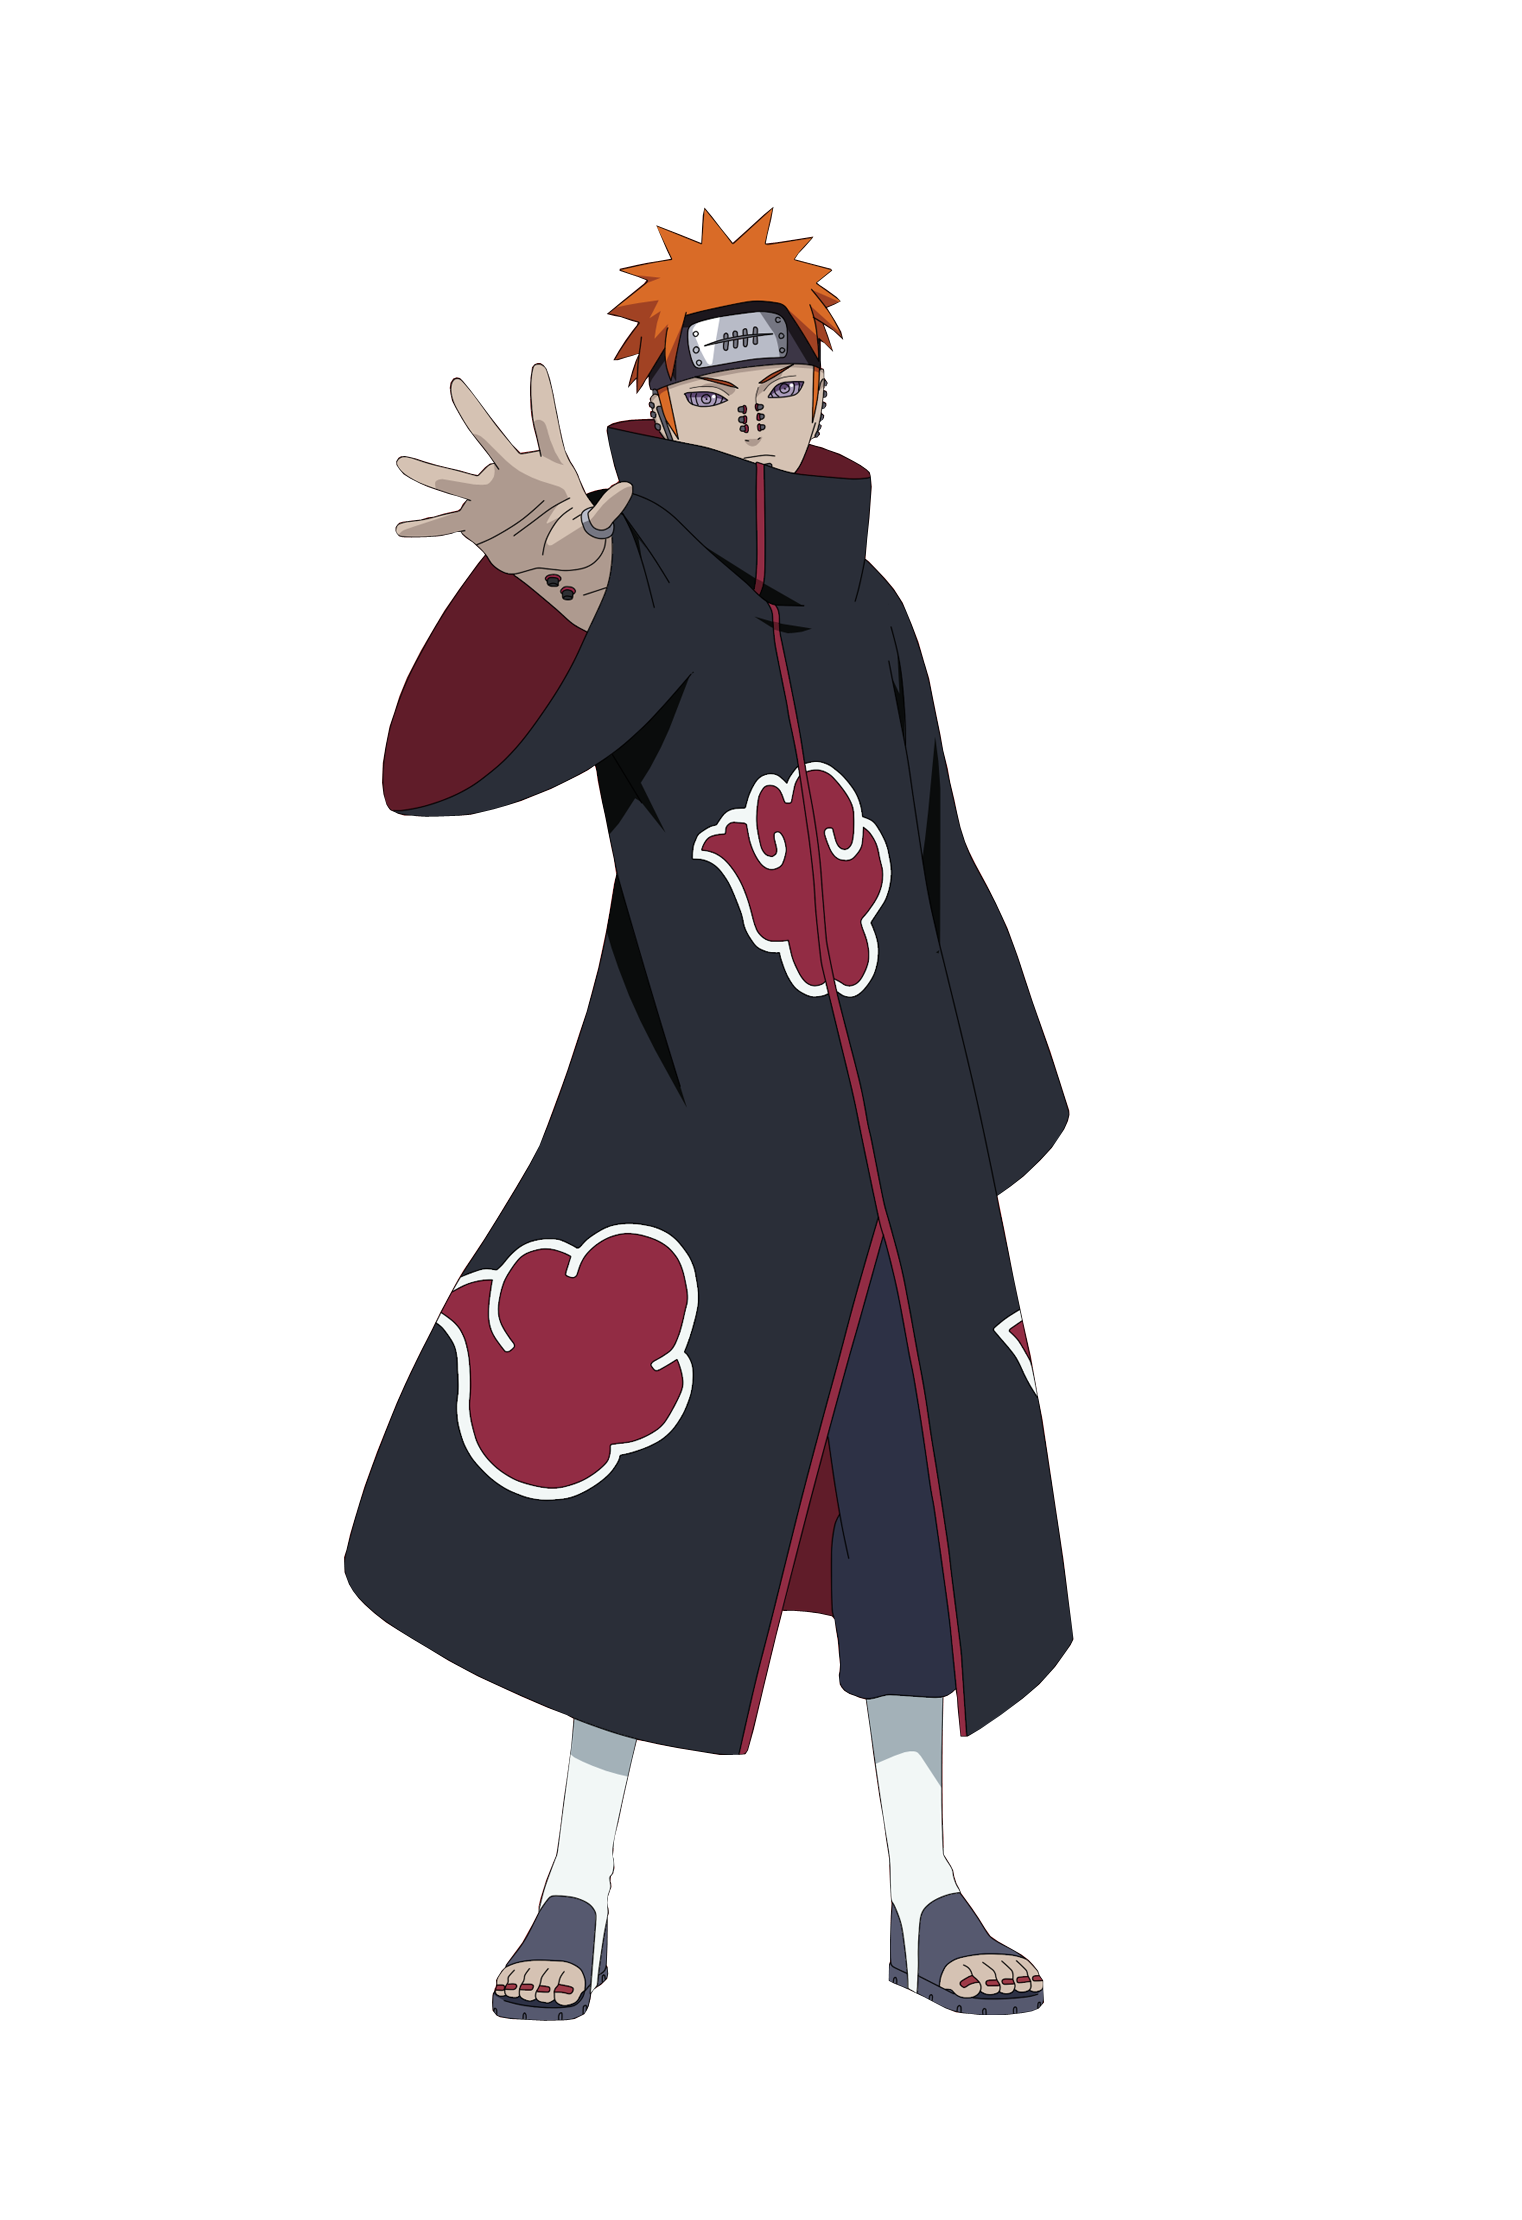 Naruto Pain Png Free Naruto Pain Png Transparent Images 56016 Pngio